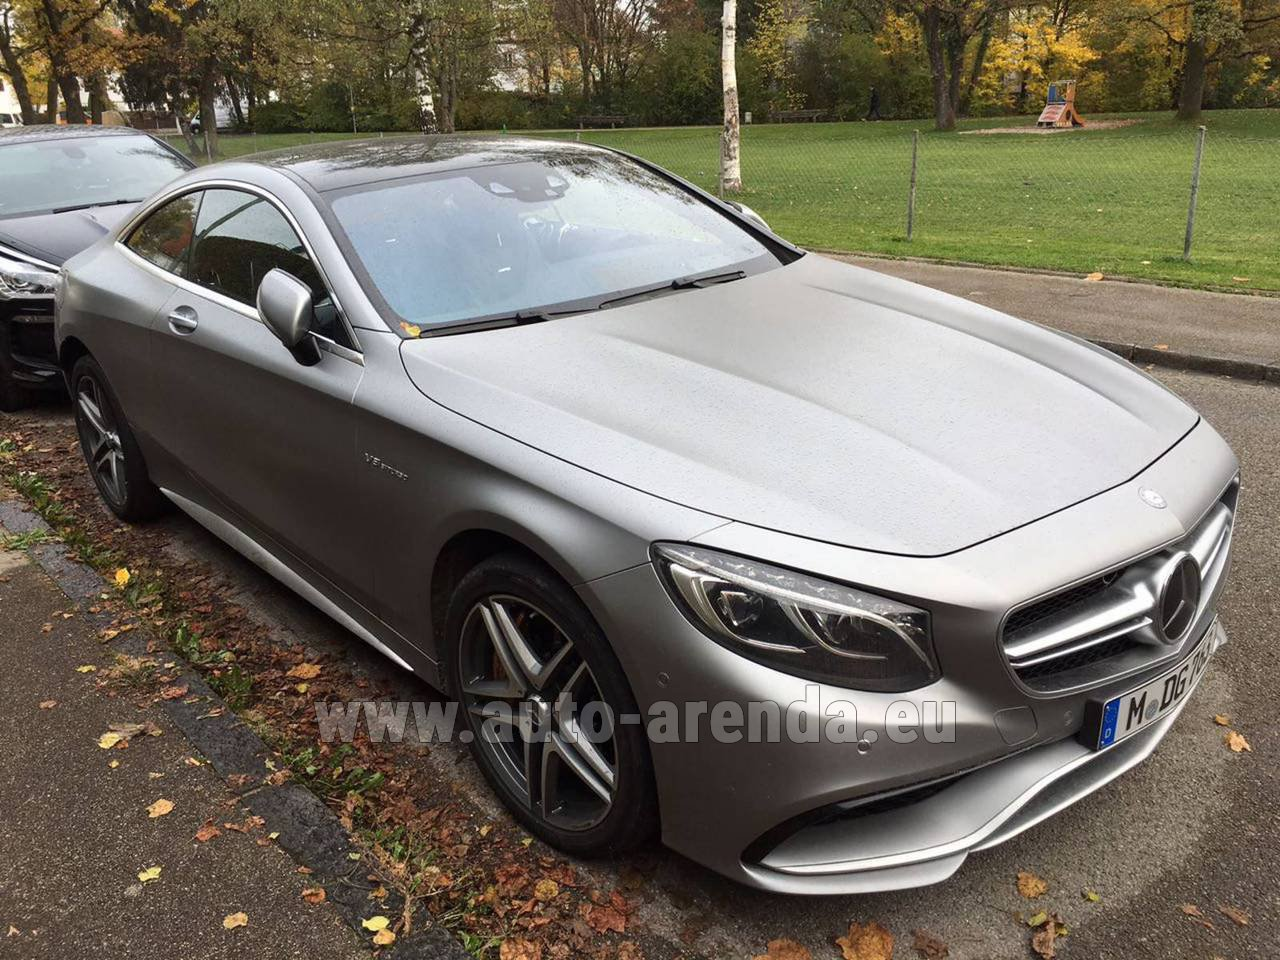 Rent mercedes benz s class s63 amg coupe in york - Mercedes benz s class coupe price ...